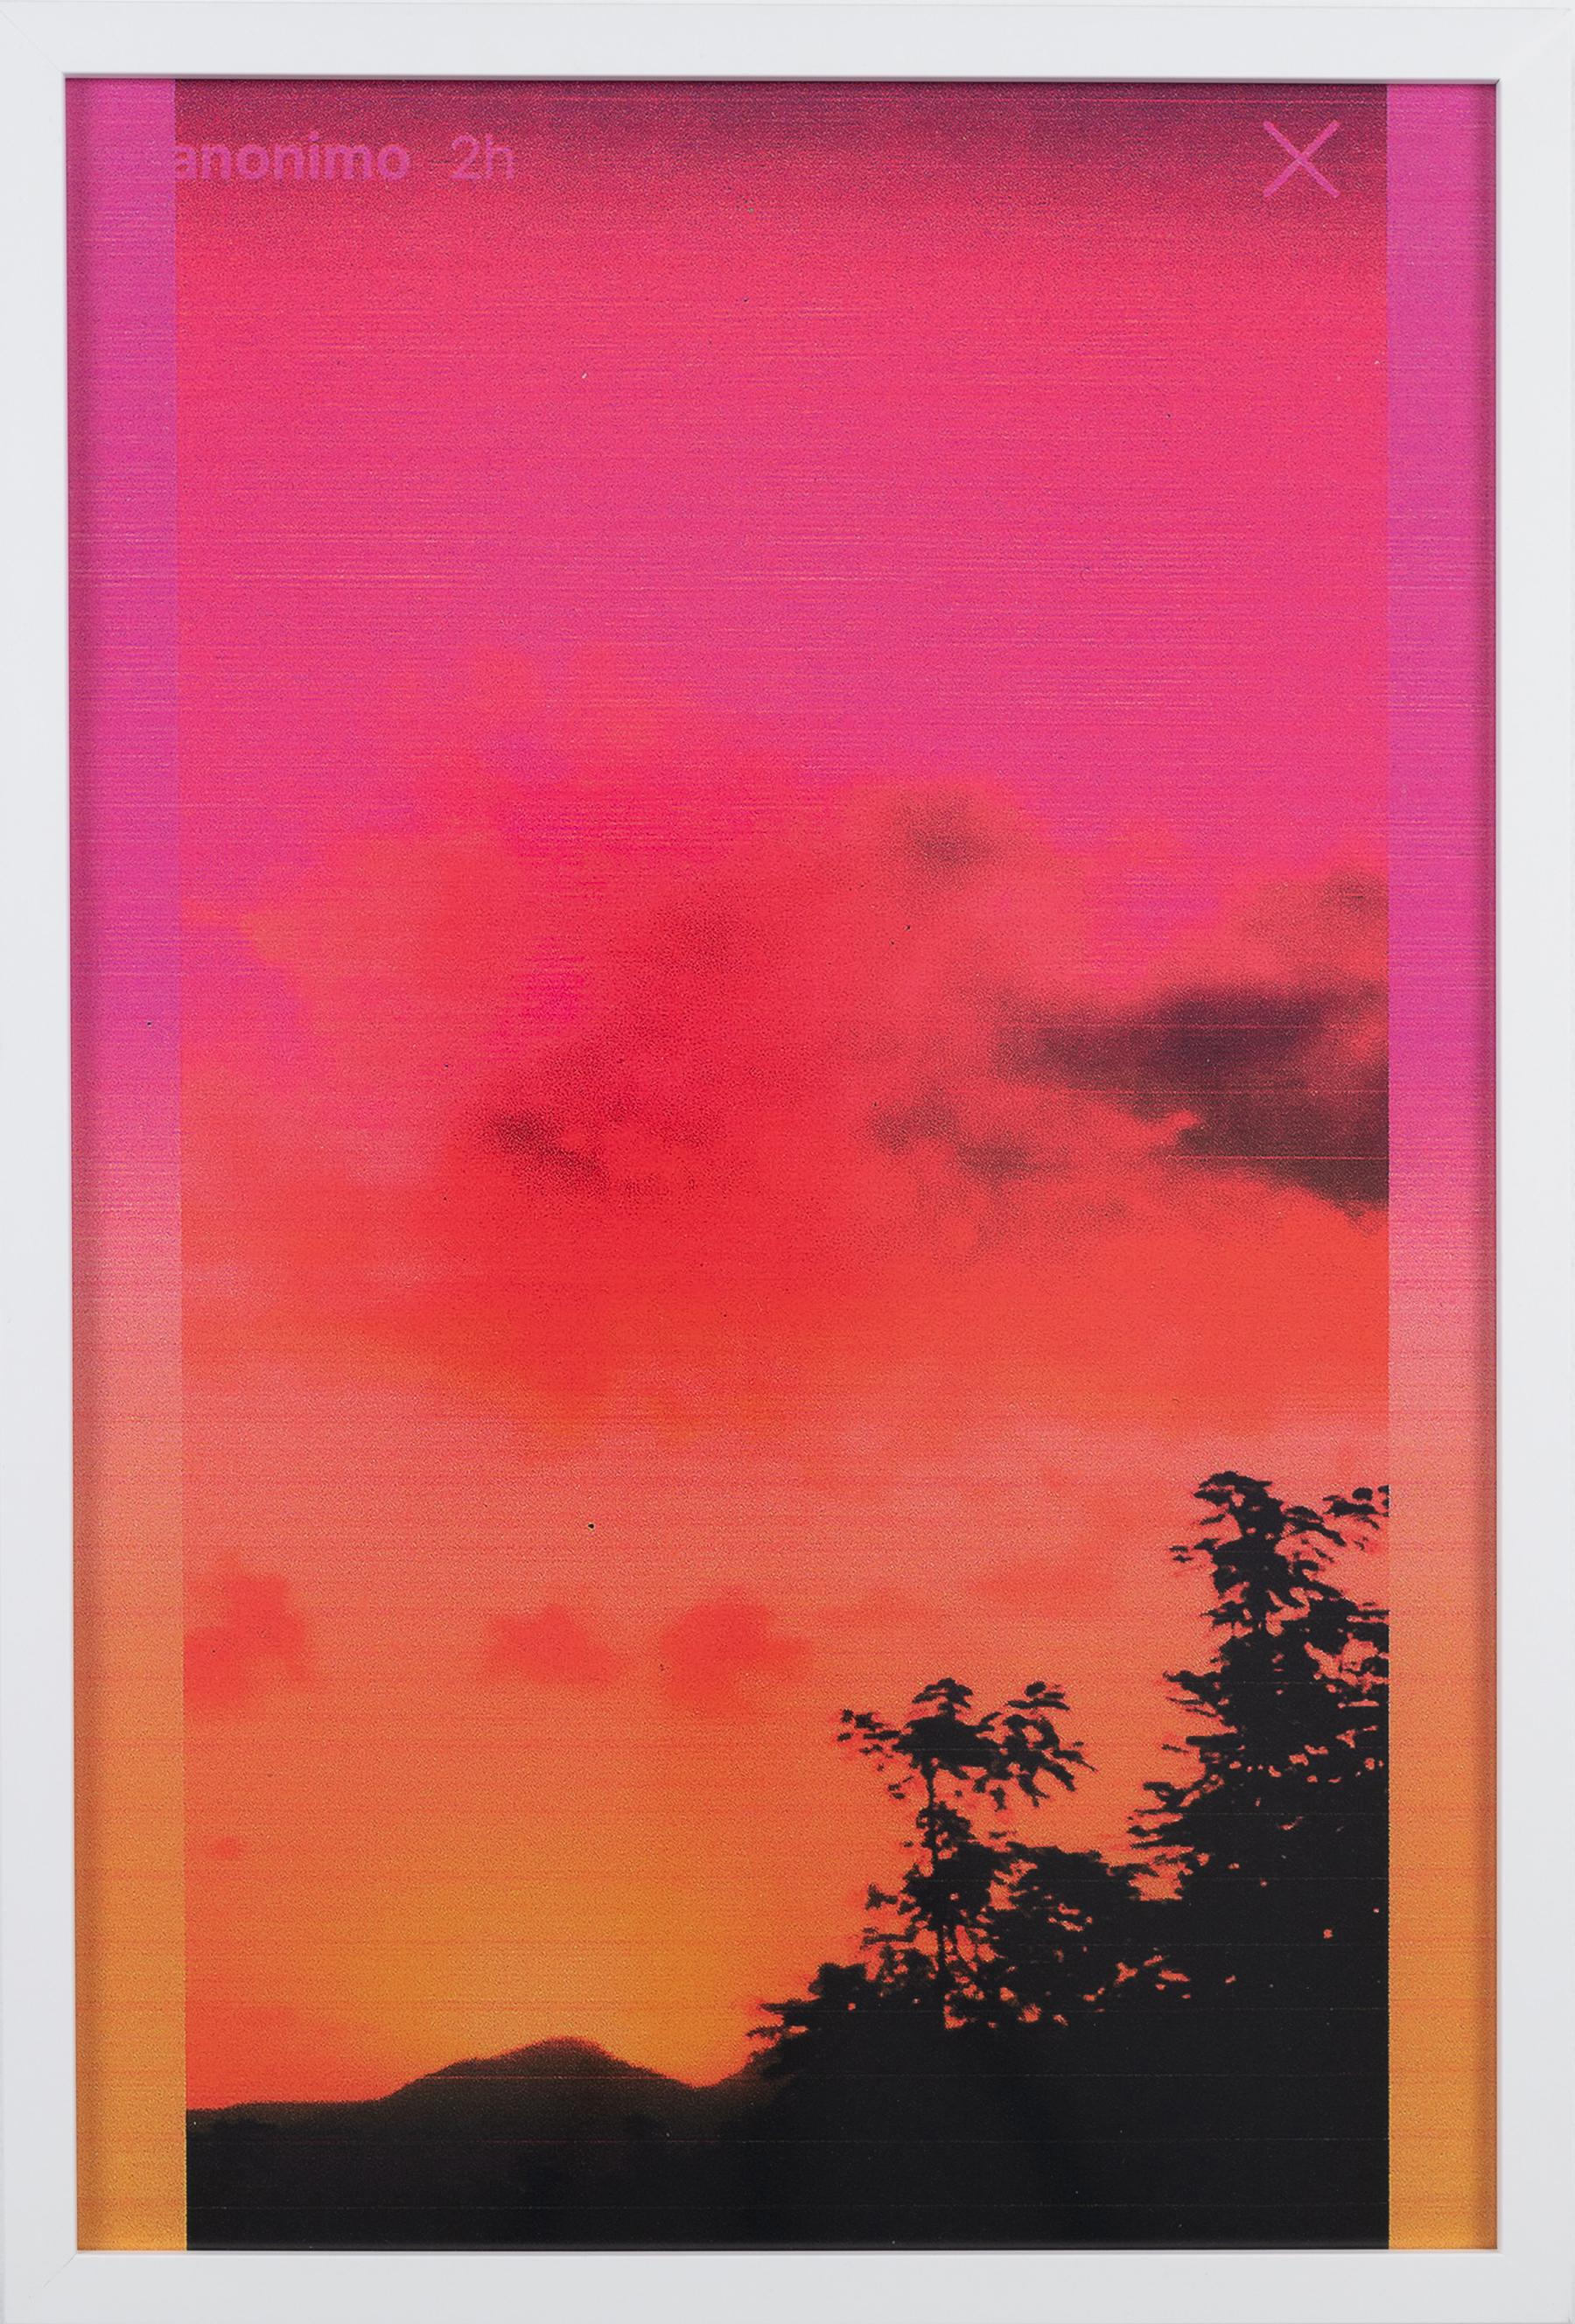 Dusk/Daybreak 1 Framed Color Photography Print  30 x 20 in. Red Orange Sunset